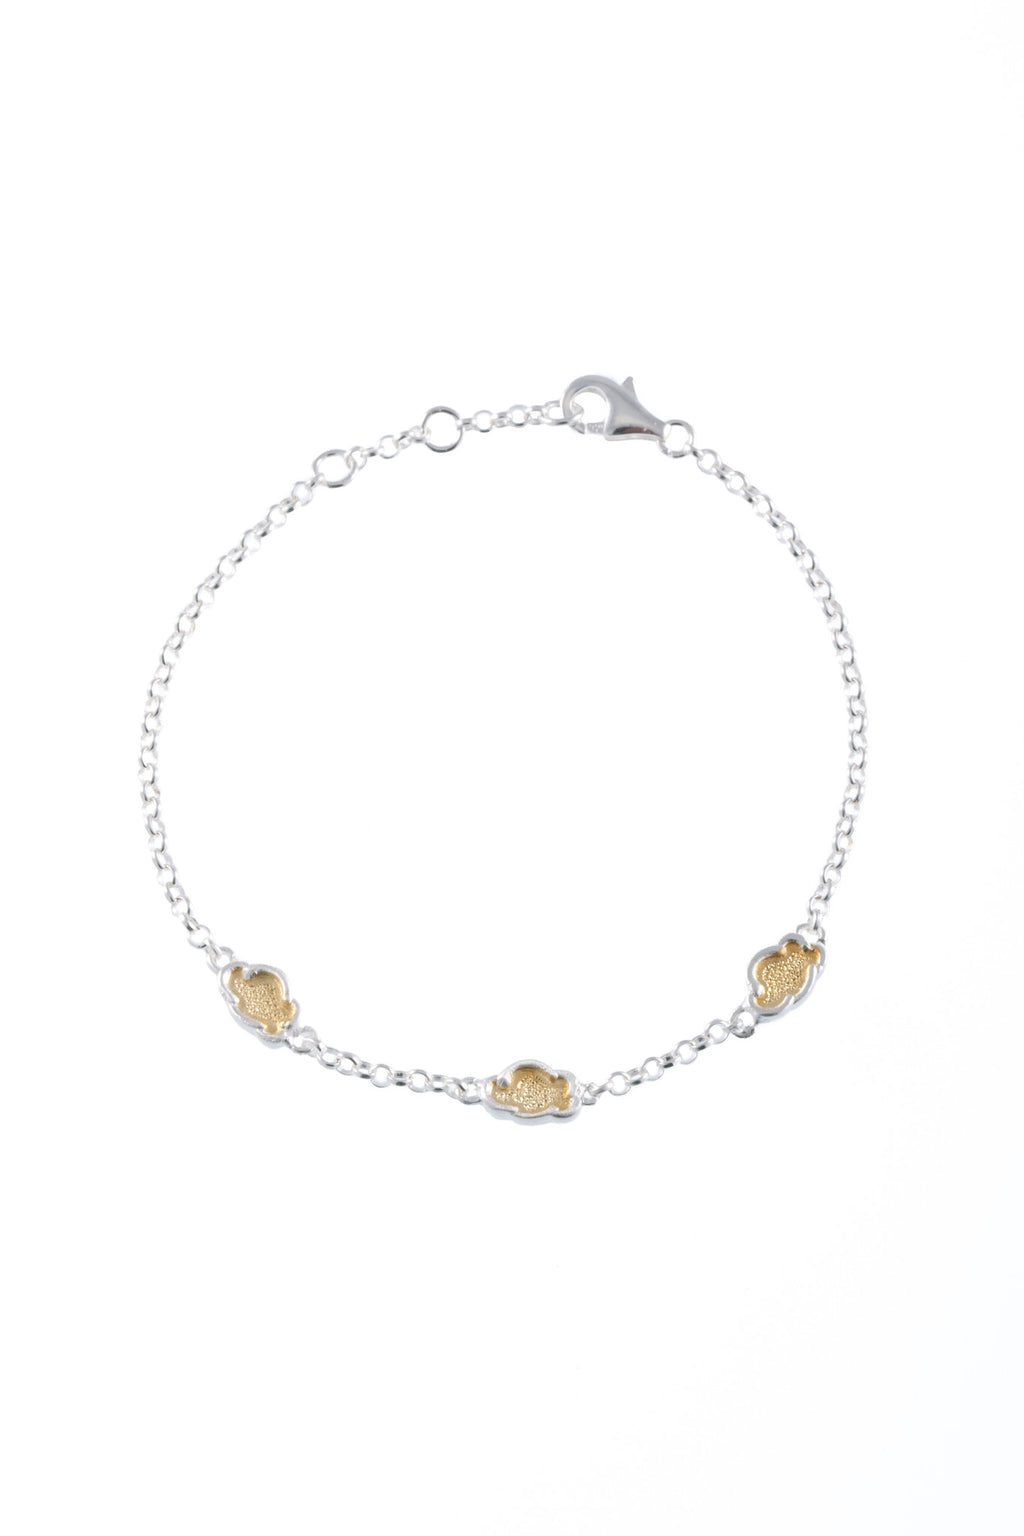 Sterling Silver Chain Bracelet with Three 22KT Gold Plated Cloud shaped disks from the Silver Linings Collection